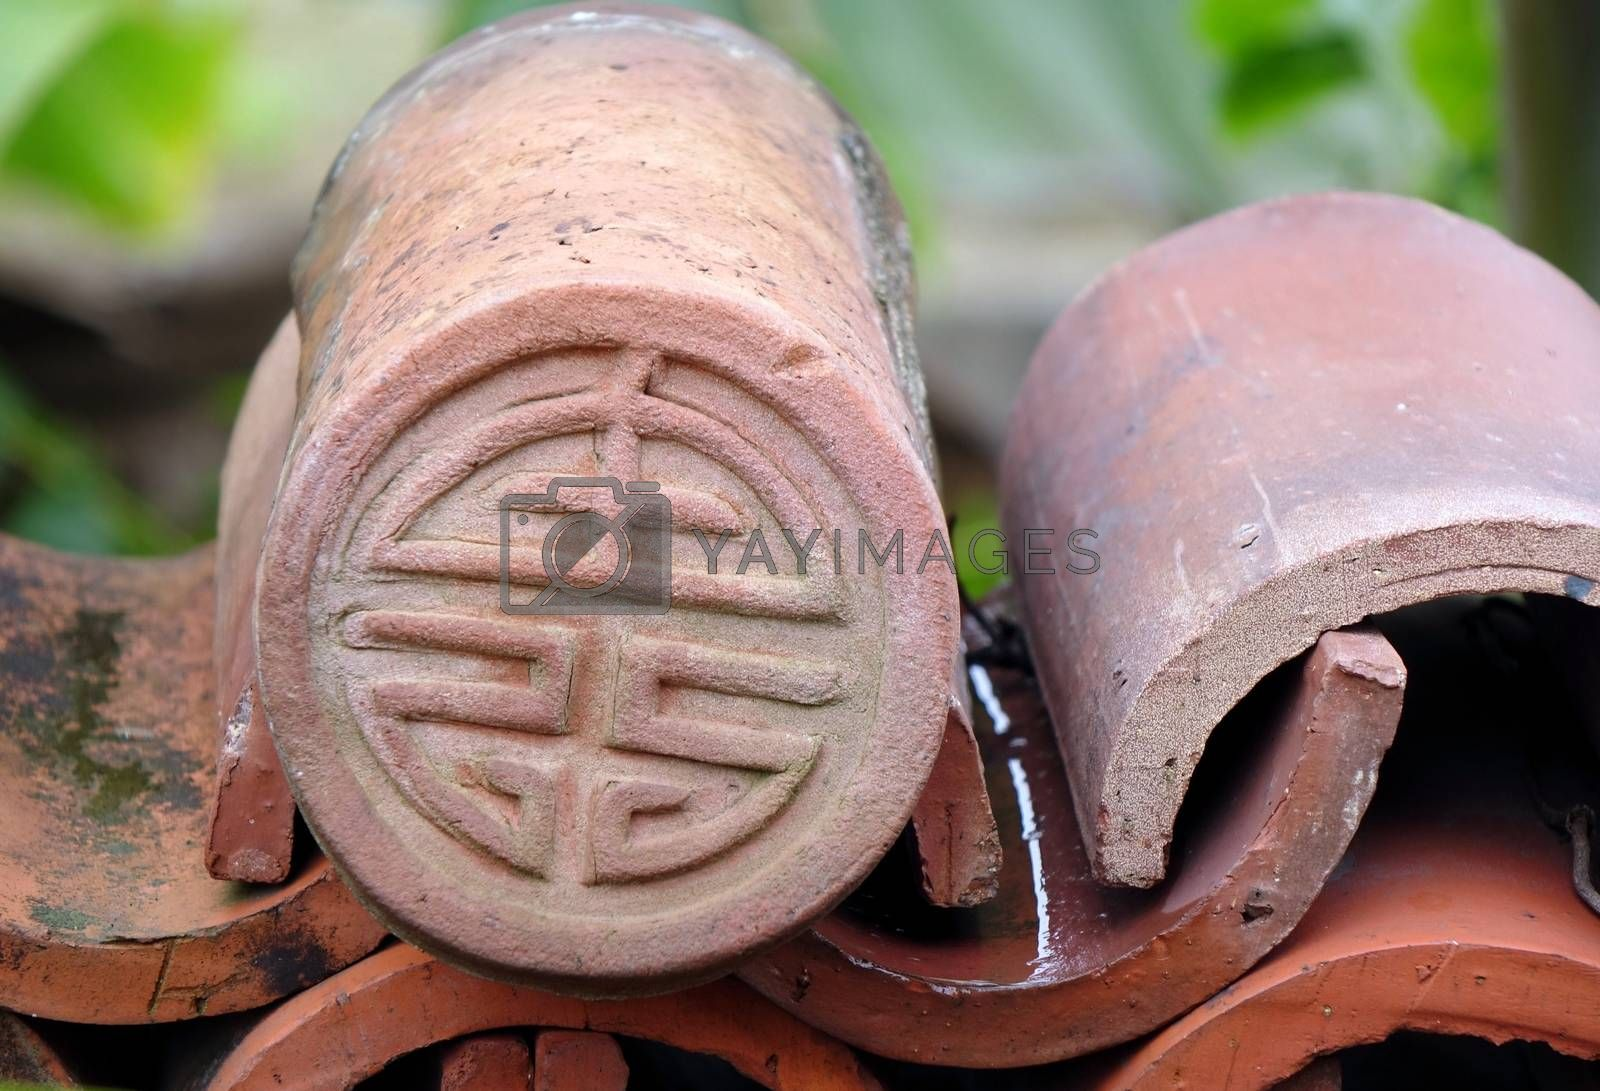 Kiln fired Chinese eave tile end with long life symbol